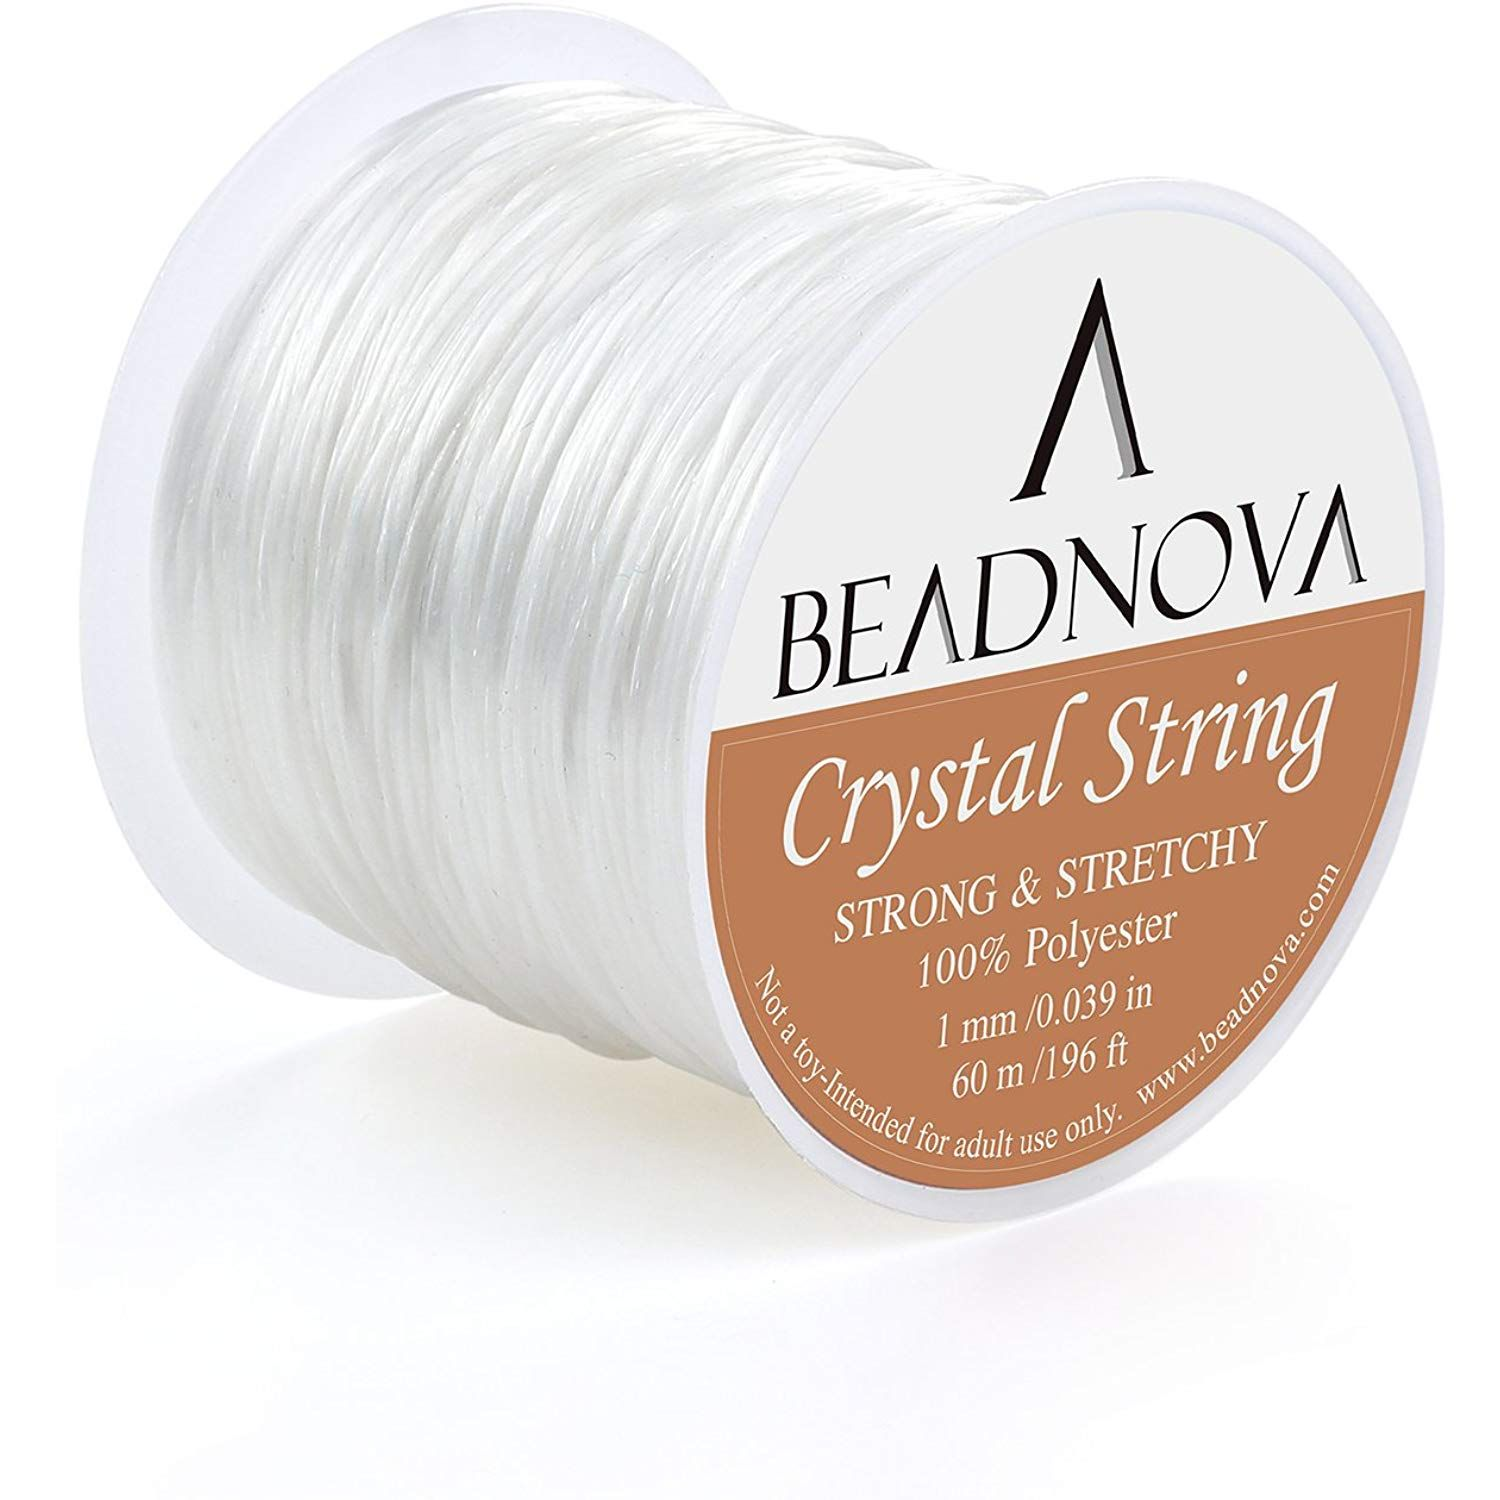 Elastic Clear Beading Thread Stretch Polyester String Cords for Jewelry Making